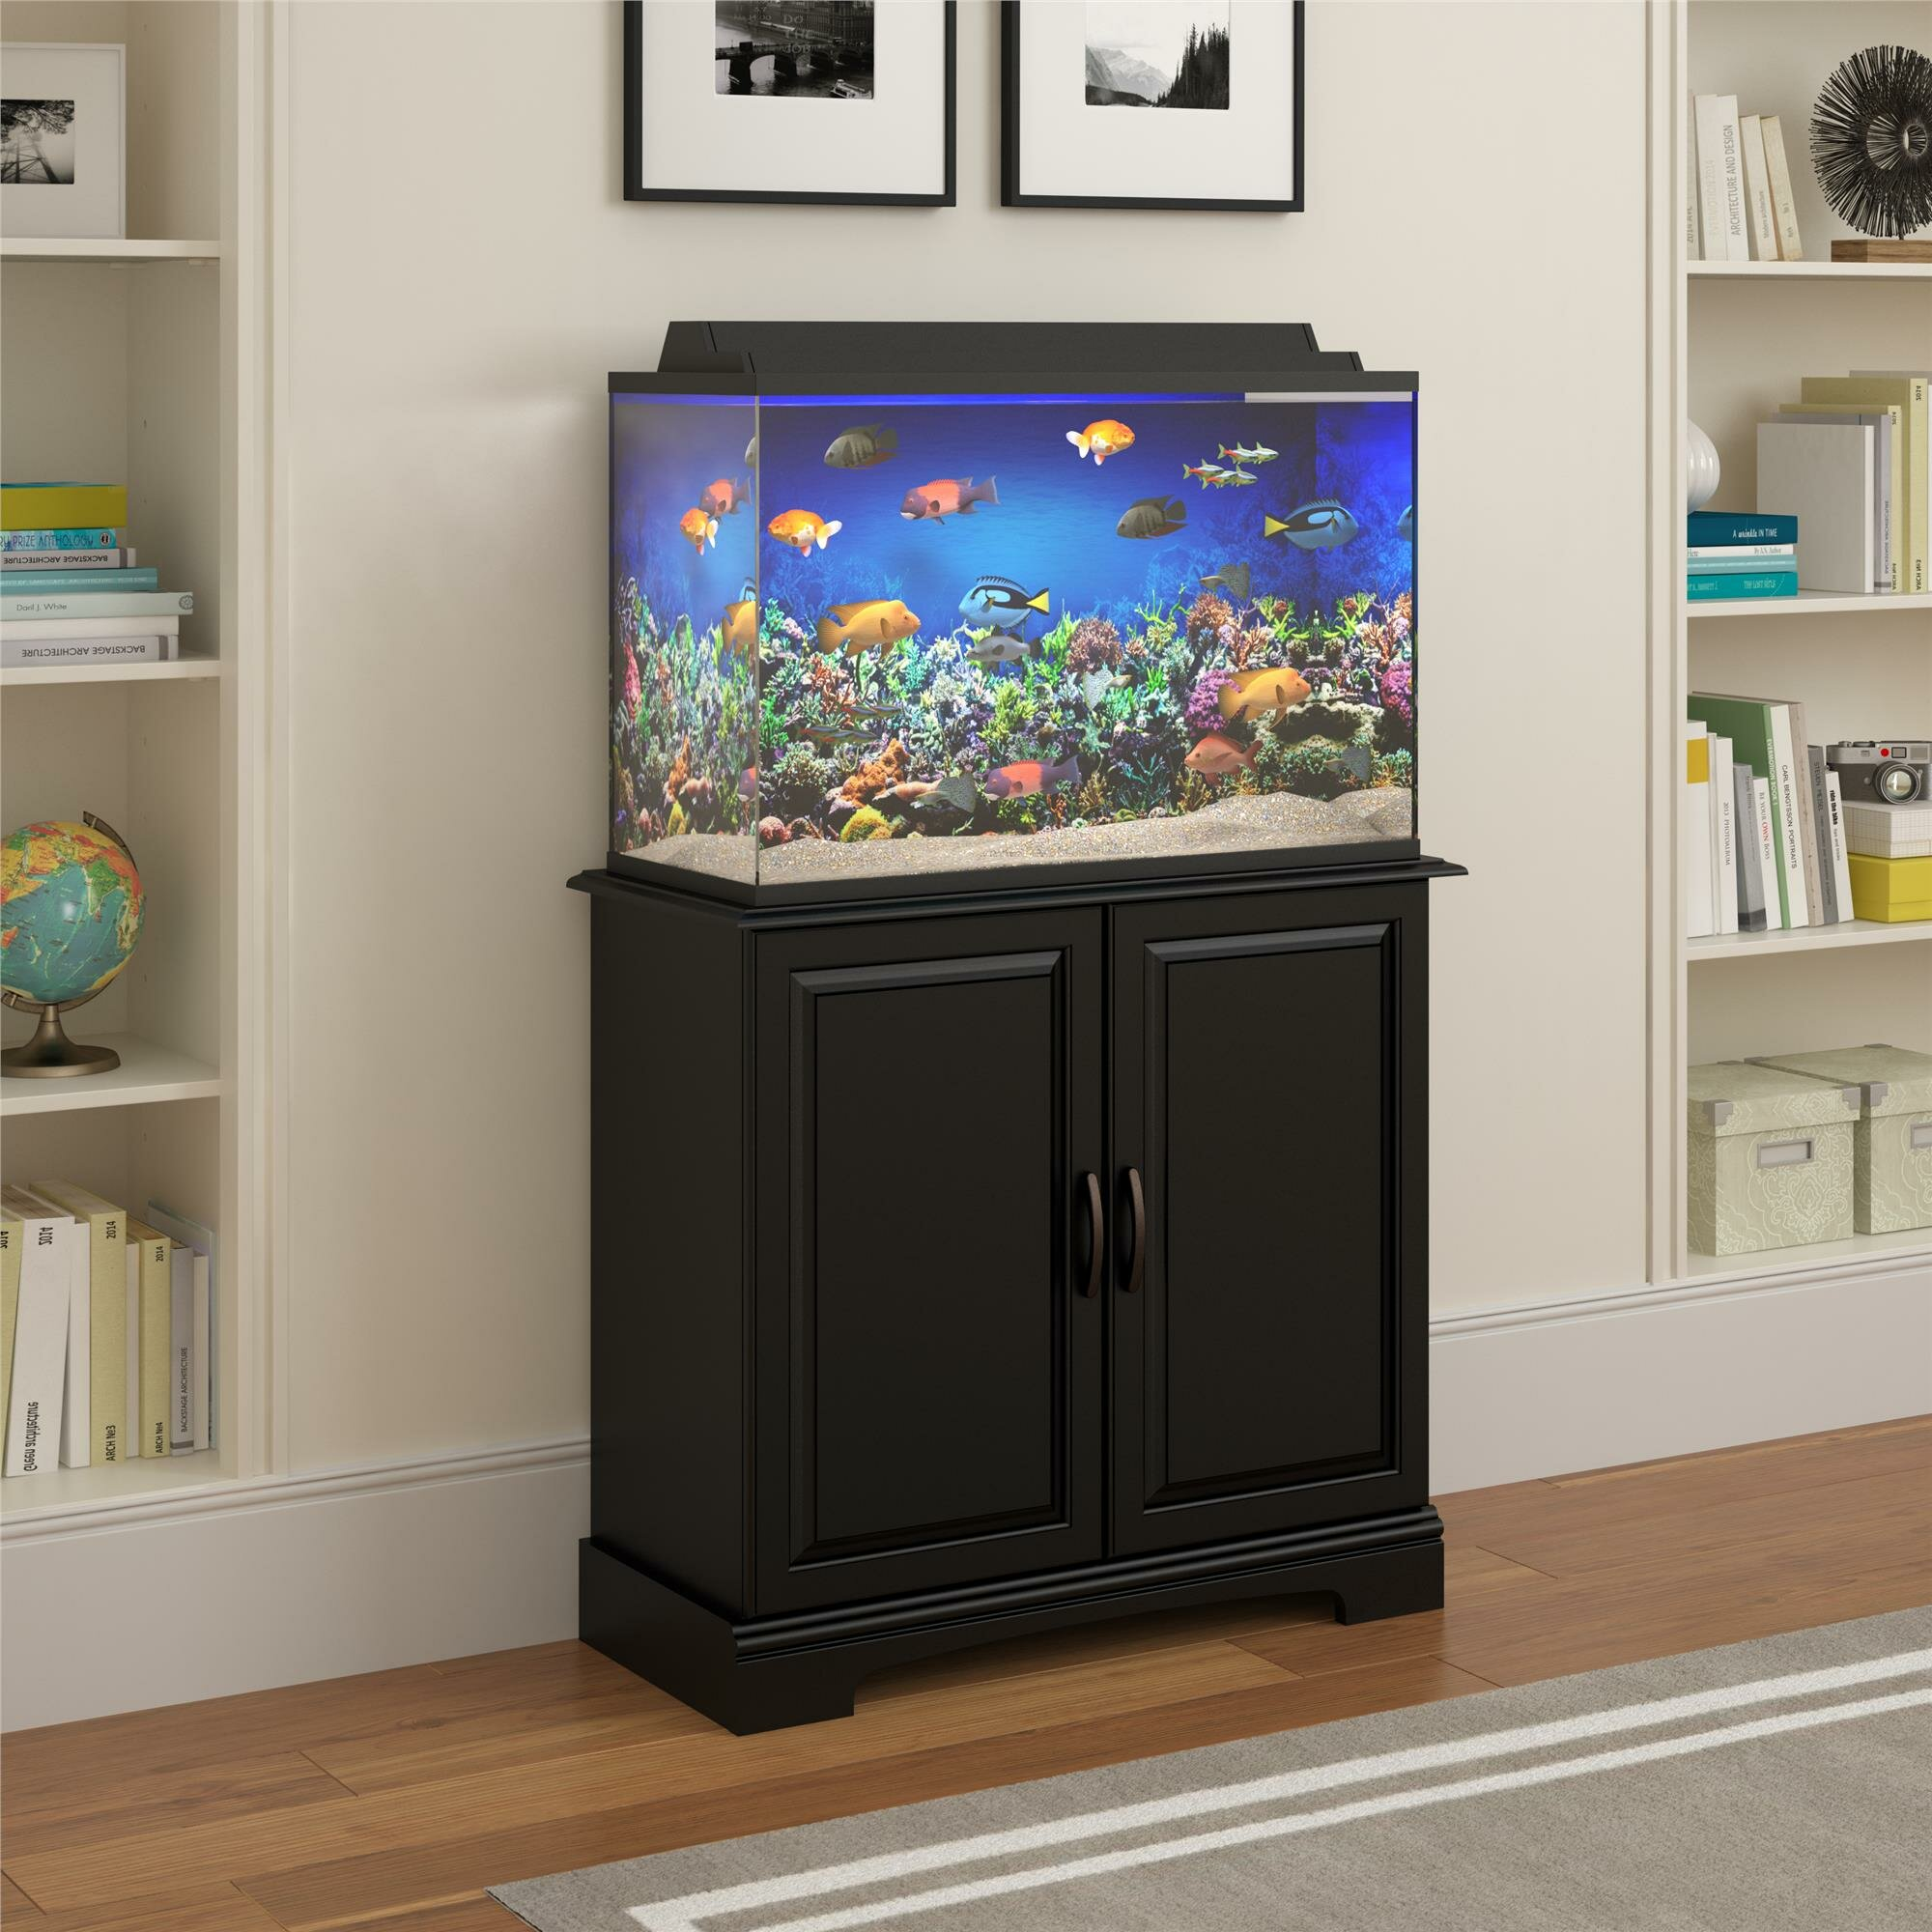 Altra Harbor 29 37 Gallon Cabinet Aquarium Stand & Reviews  Wayfair